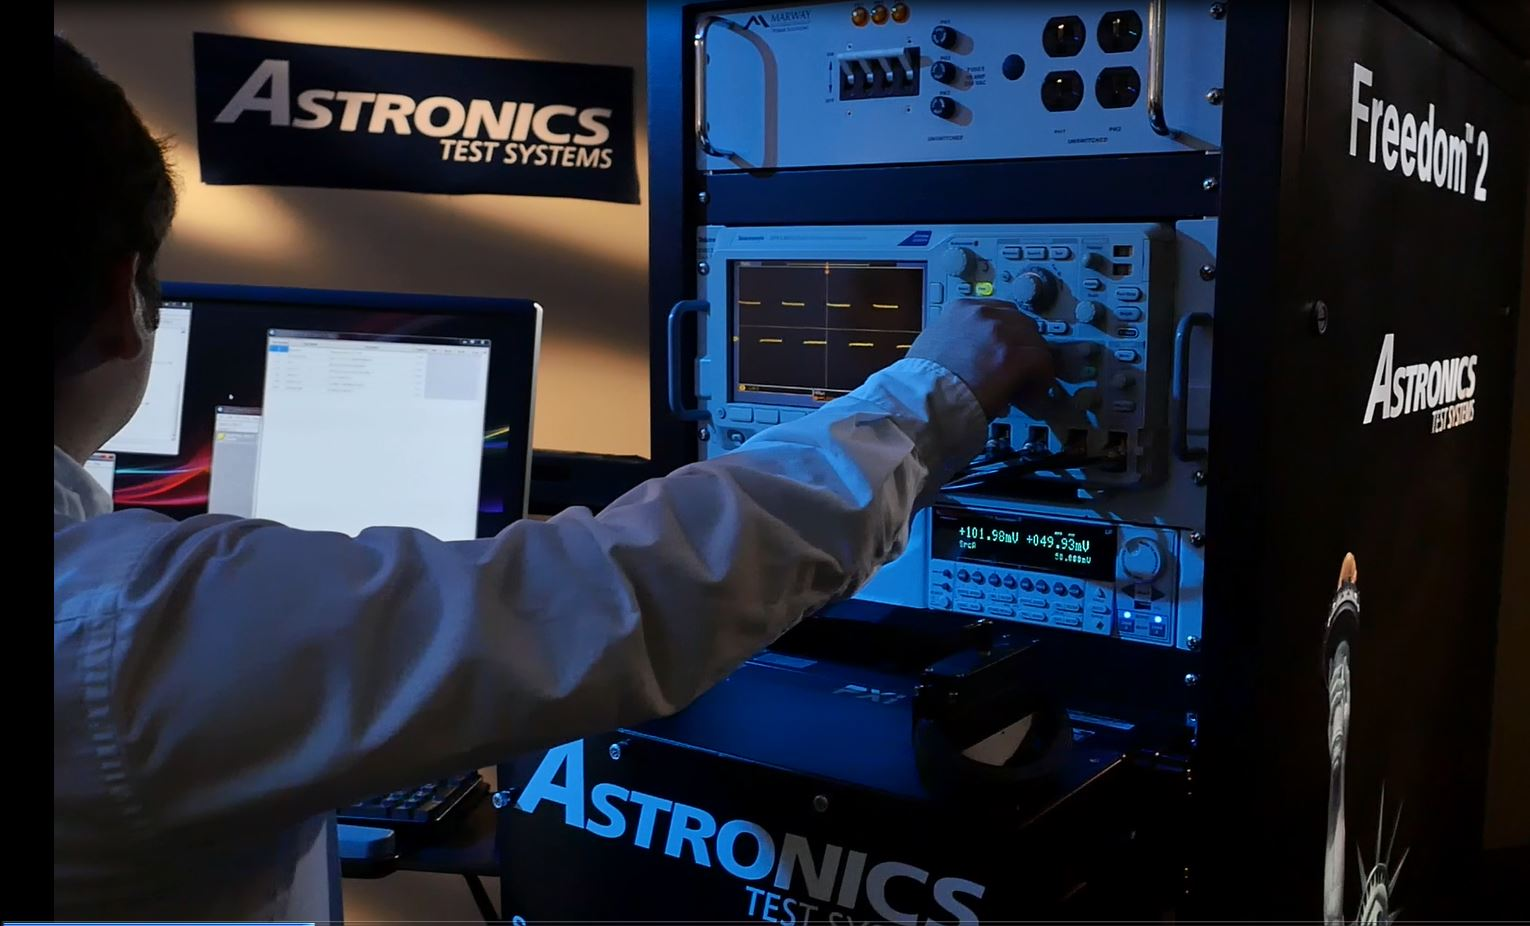 Freedom 2 Universal Functional Tester from Astronics Test Systems